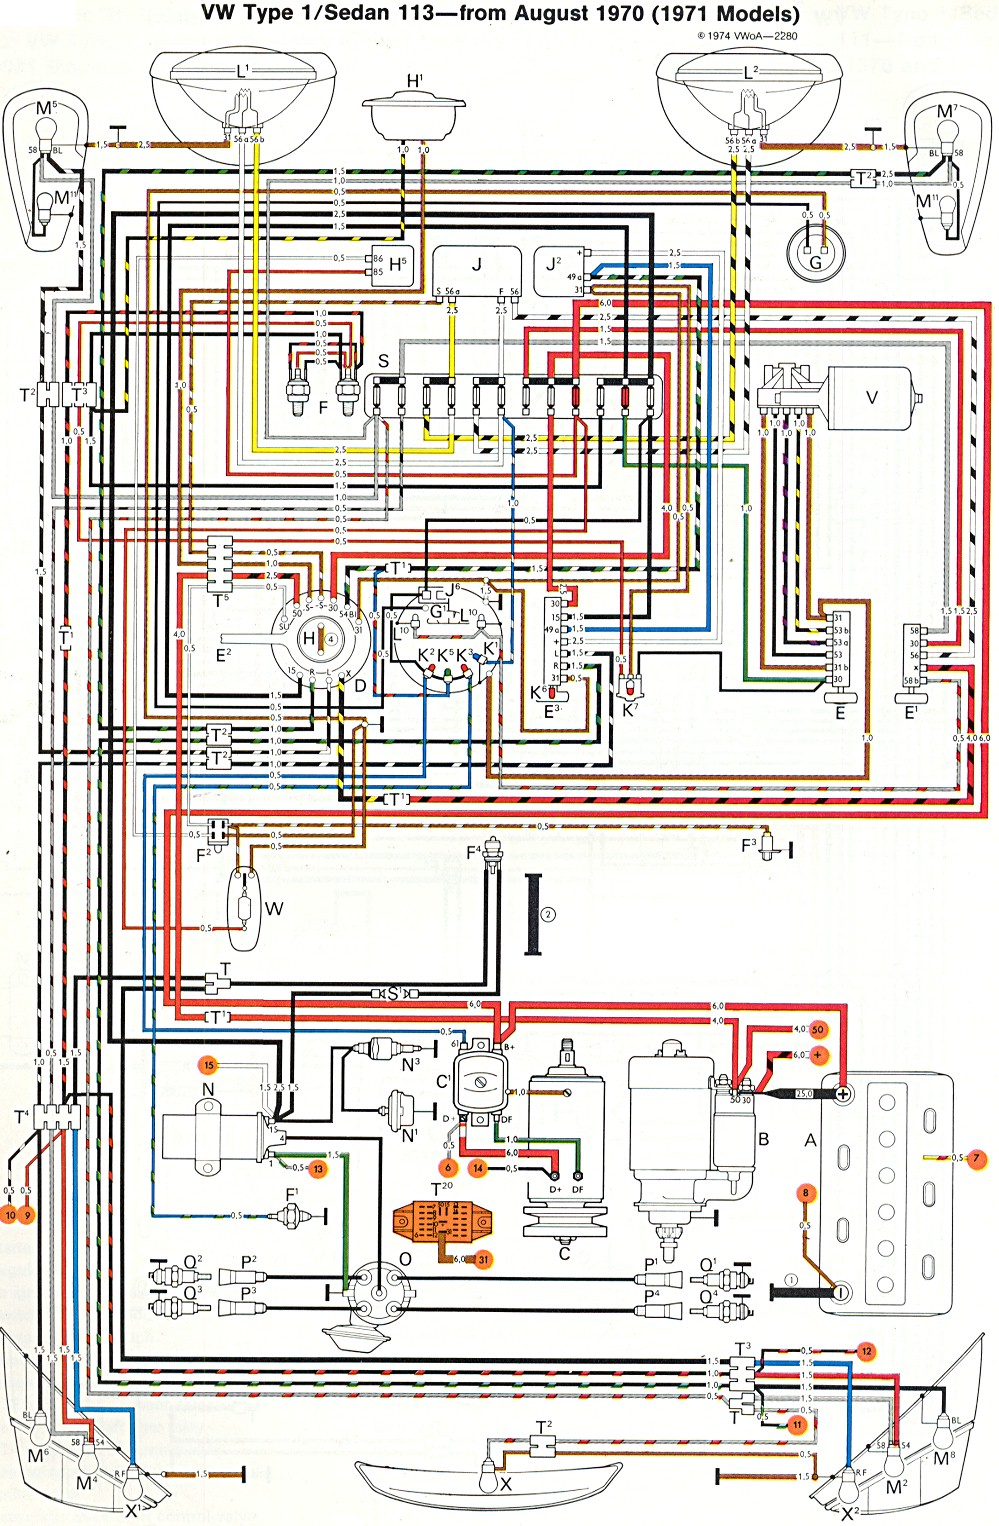 bug_super_71 1971 super beetle wiring diagram thegoldenbug com vw bug wiring diagram at eliteediting.co